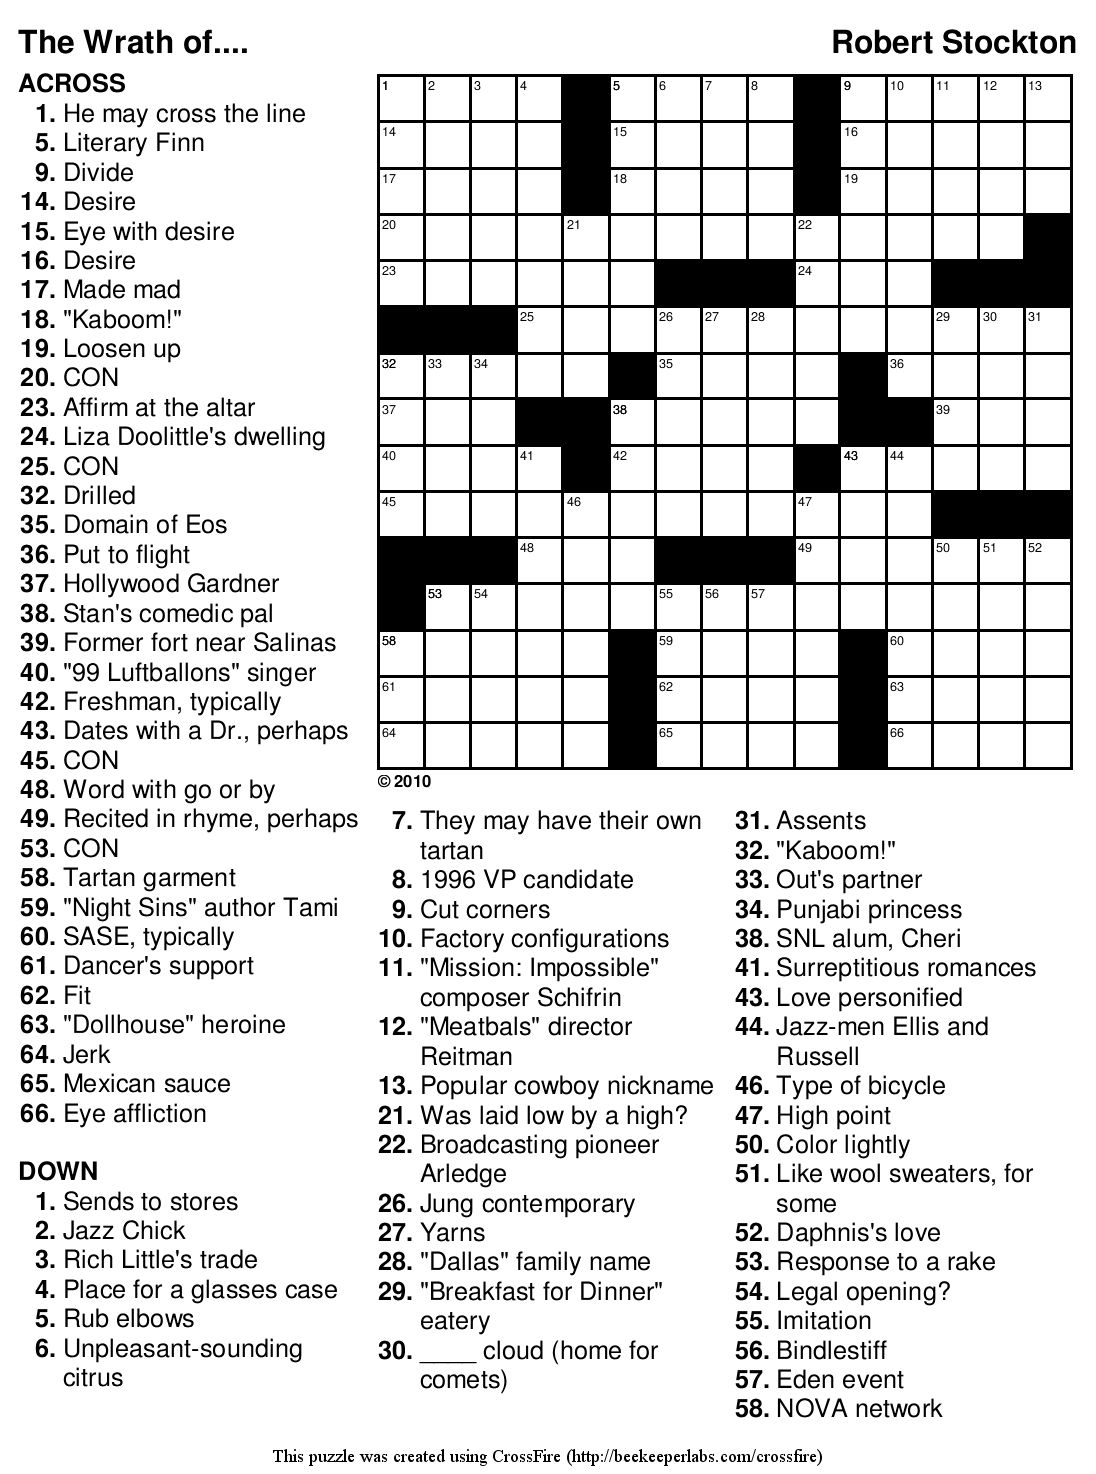 Marvelous Crossword Puzzles Easy Printable Free Org | Chas's Board - Printable Crossword Puzzles.net